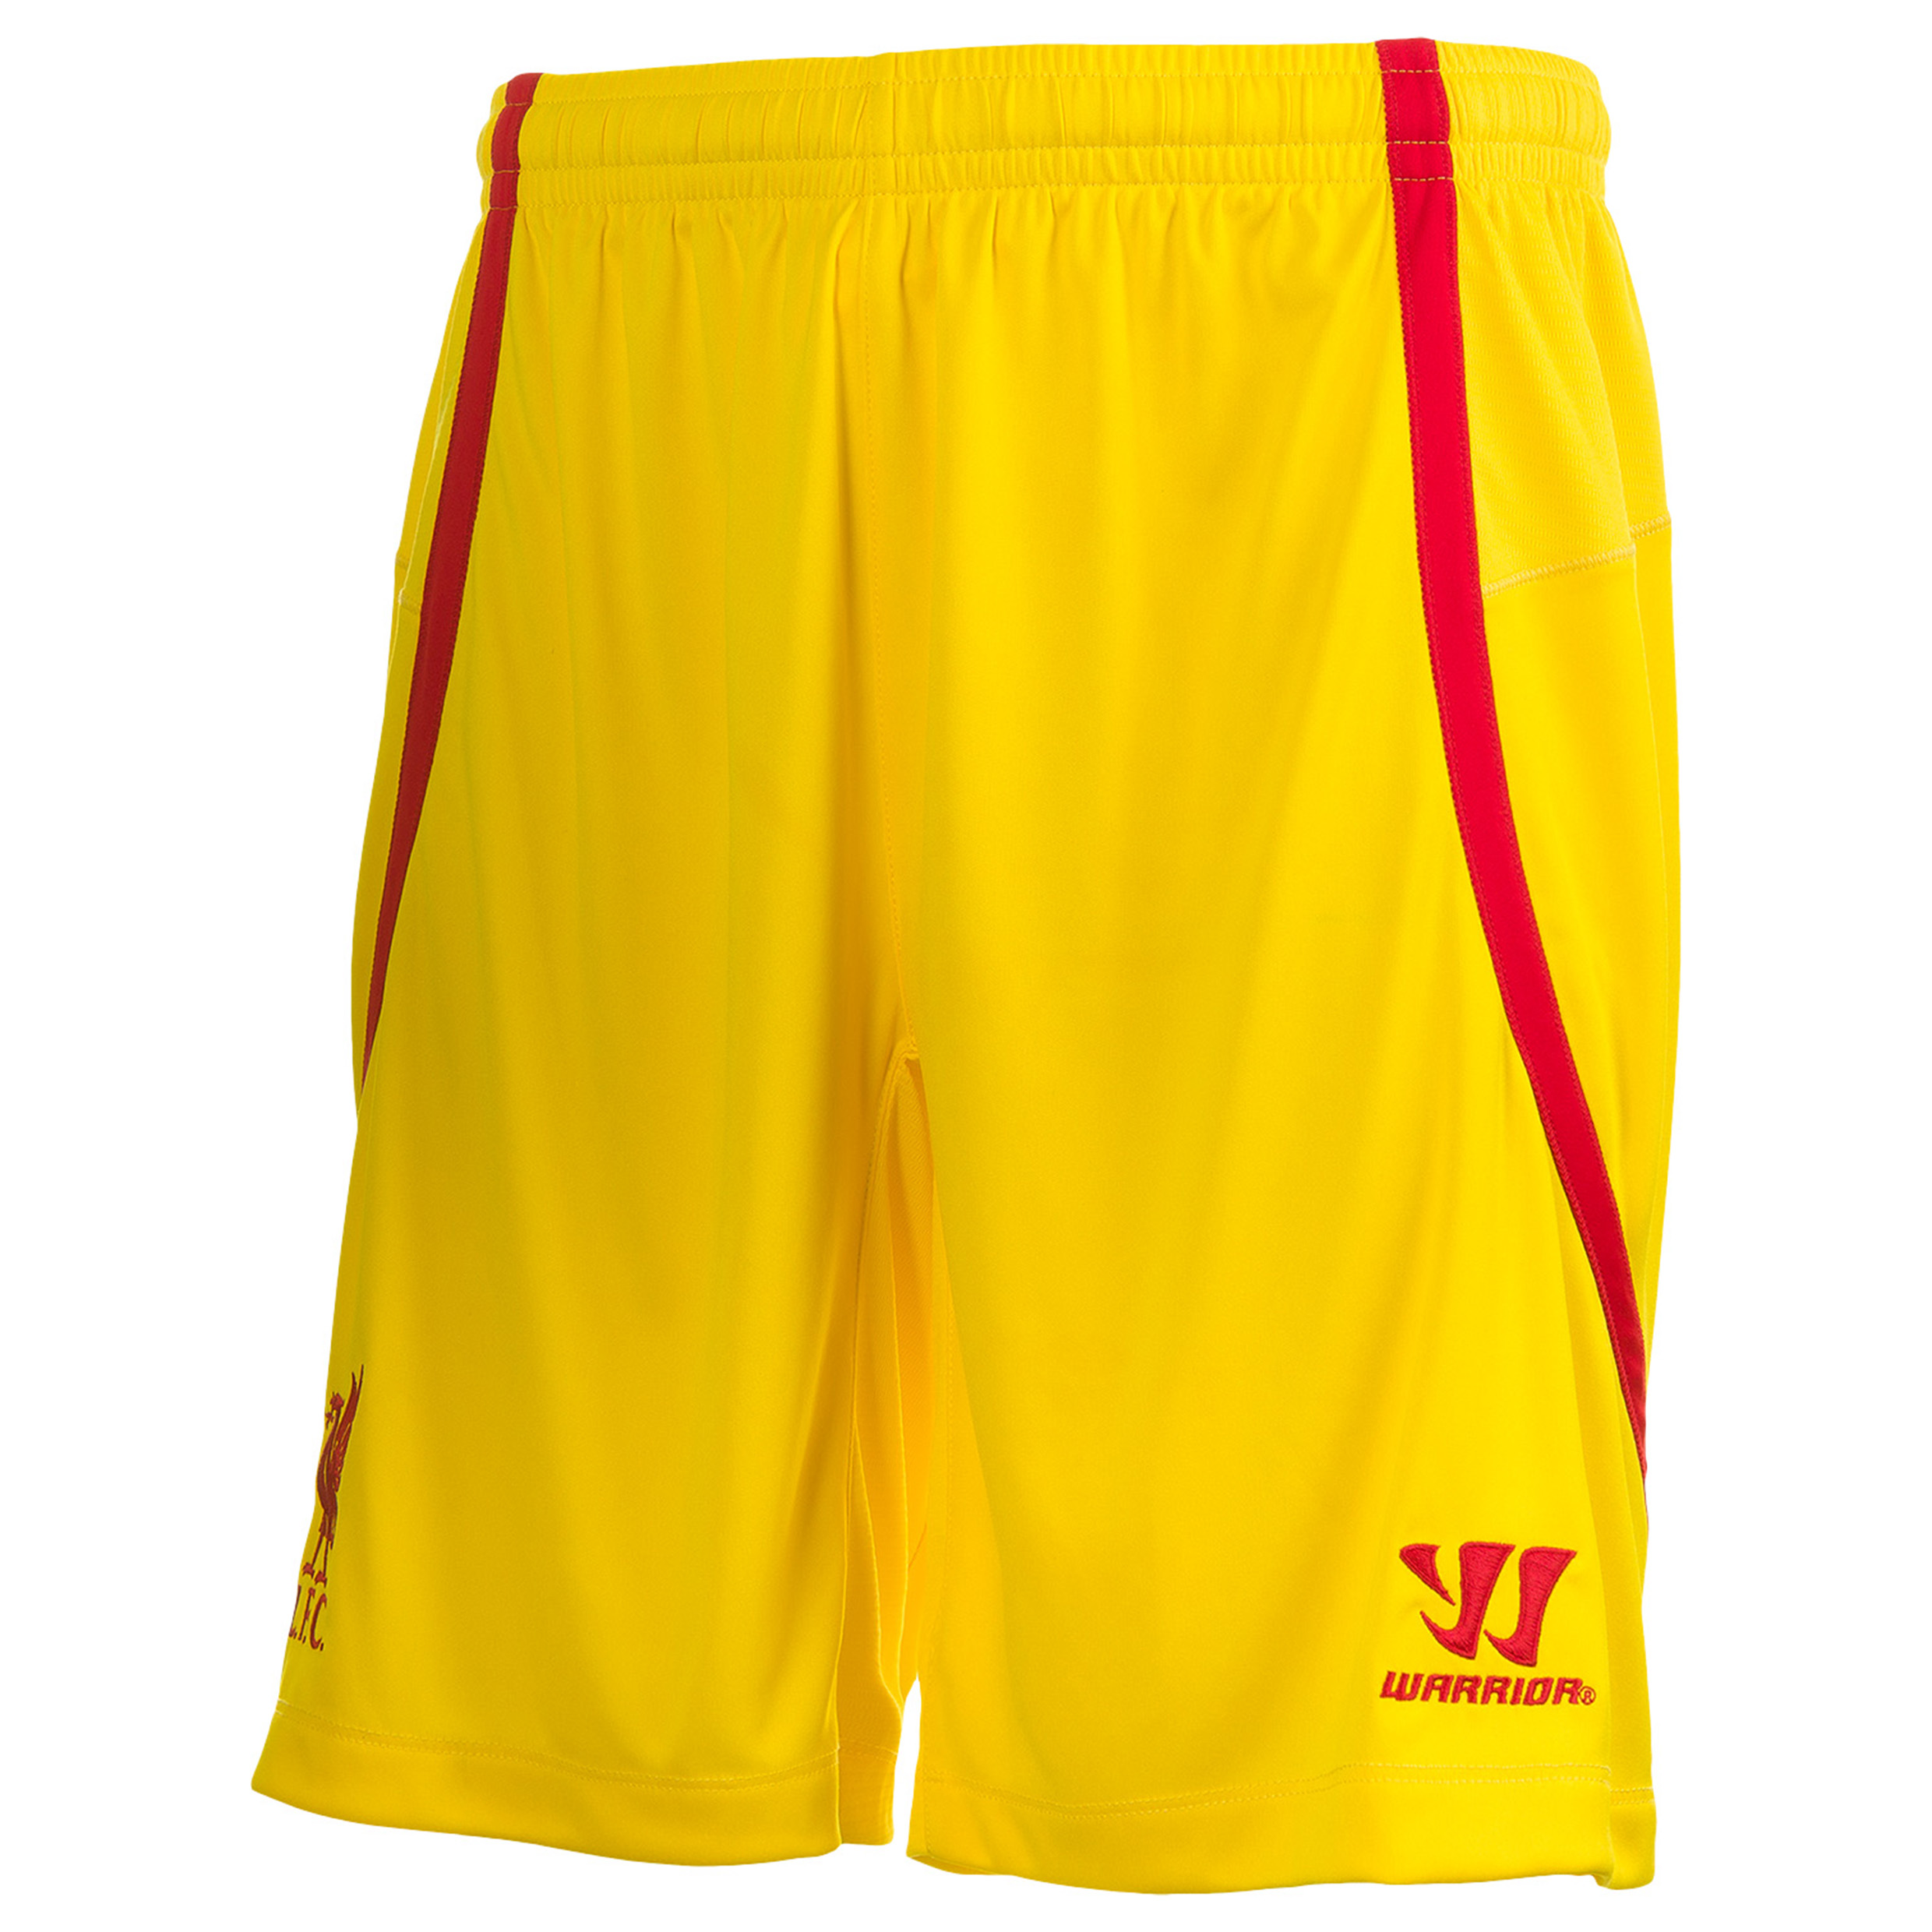 Liverpool Away Shorts 2014/15